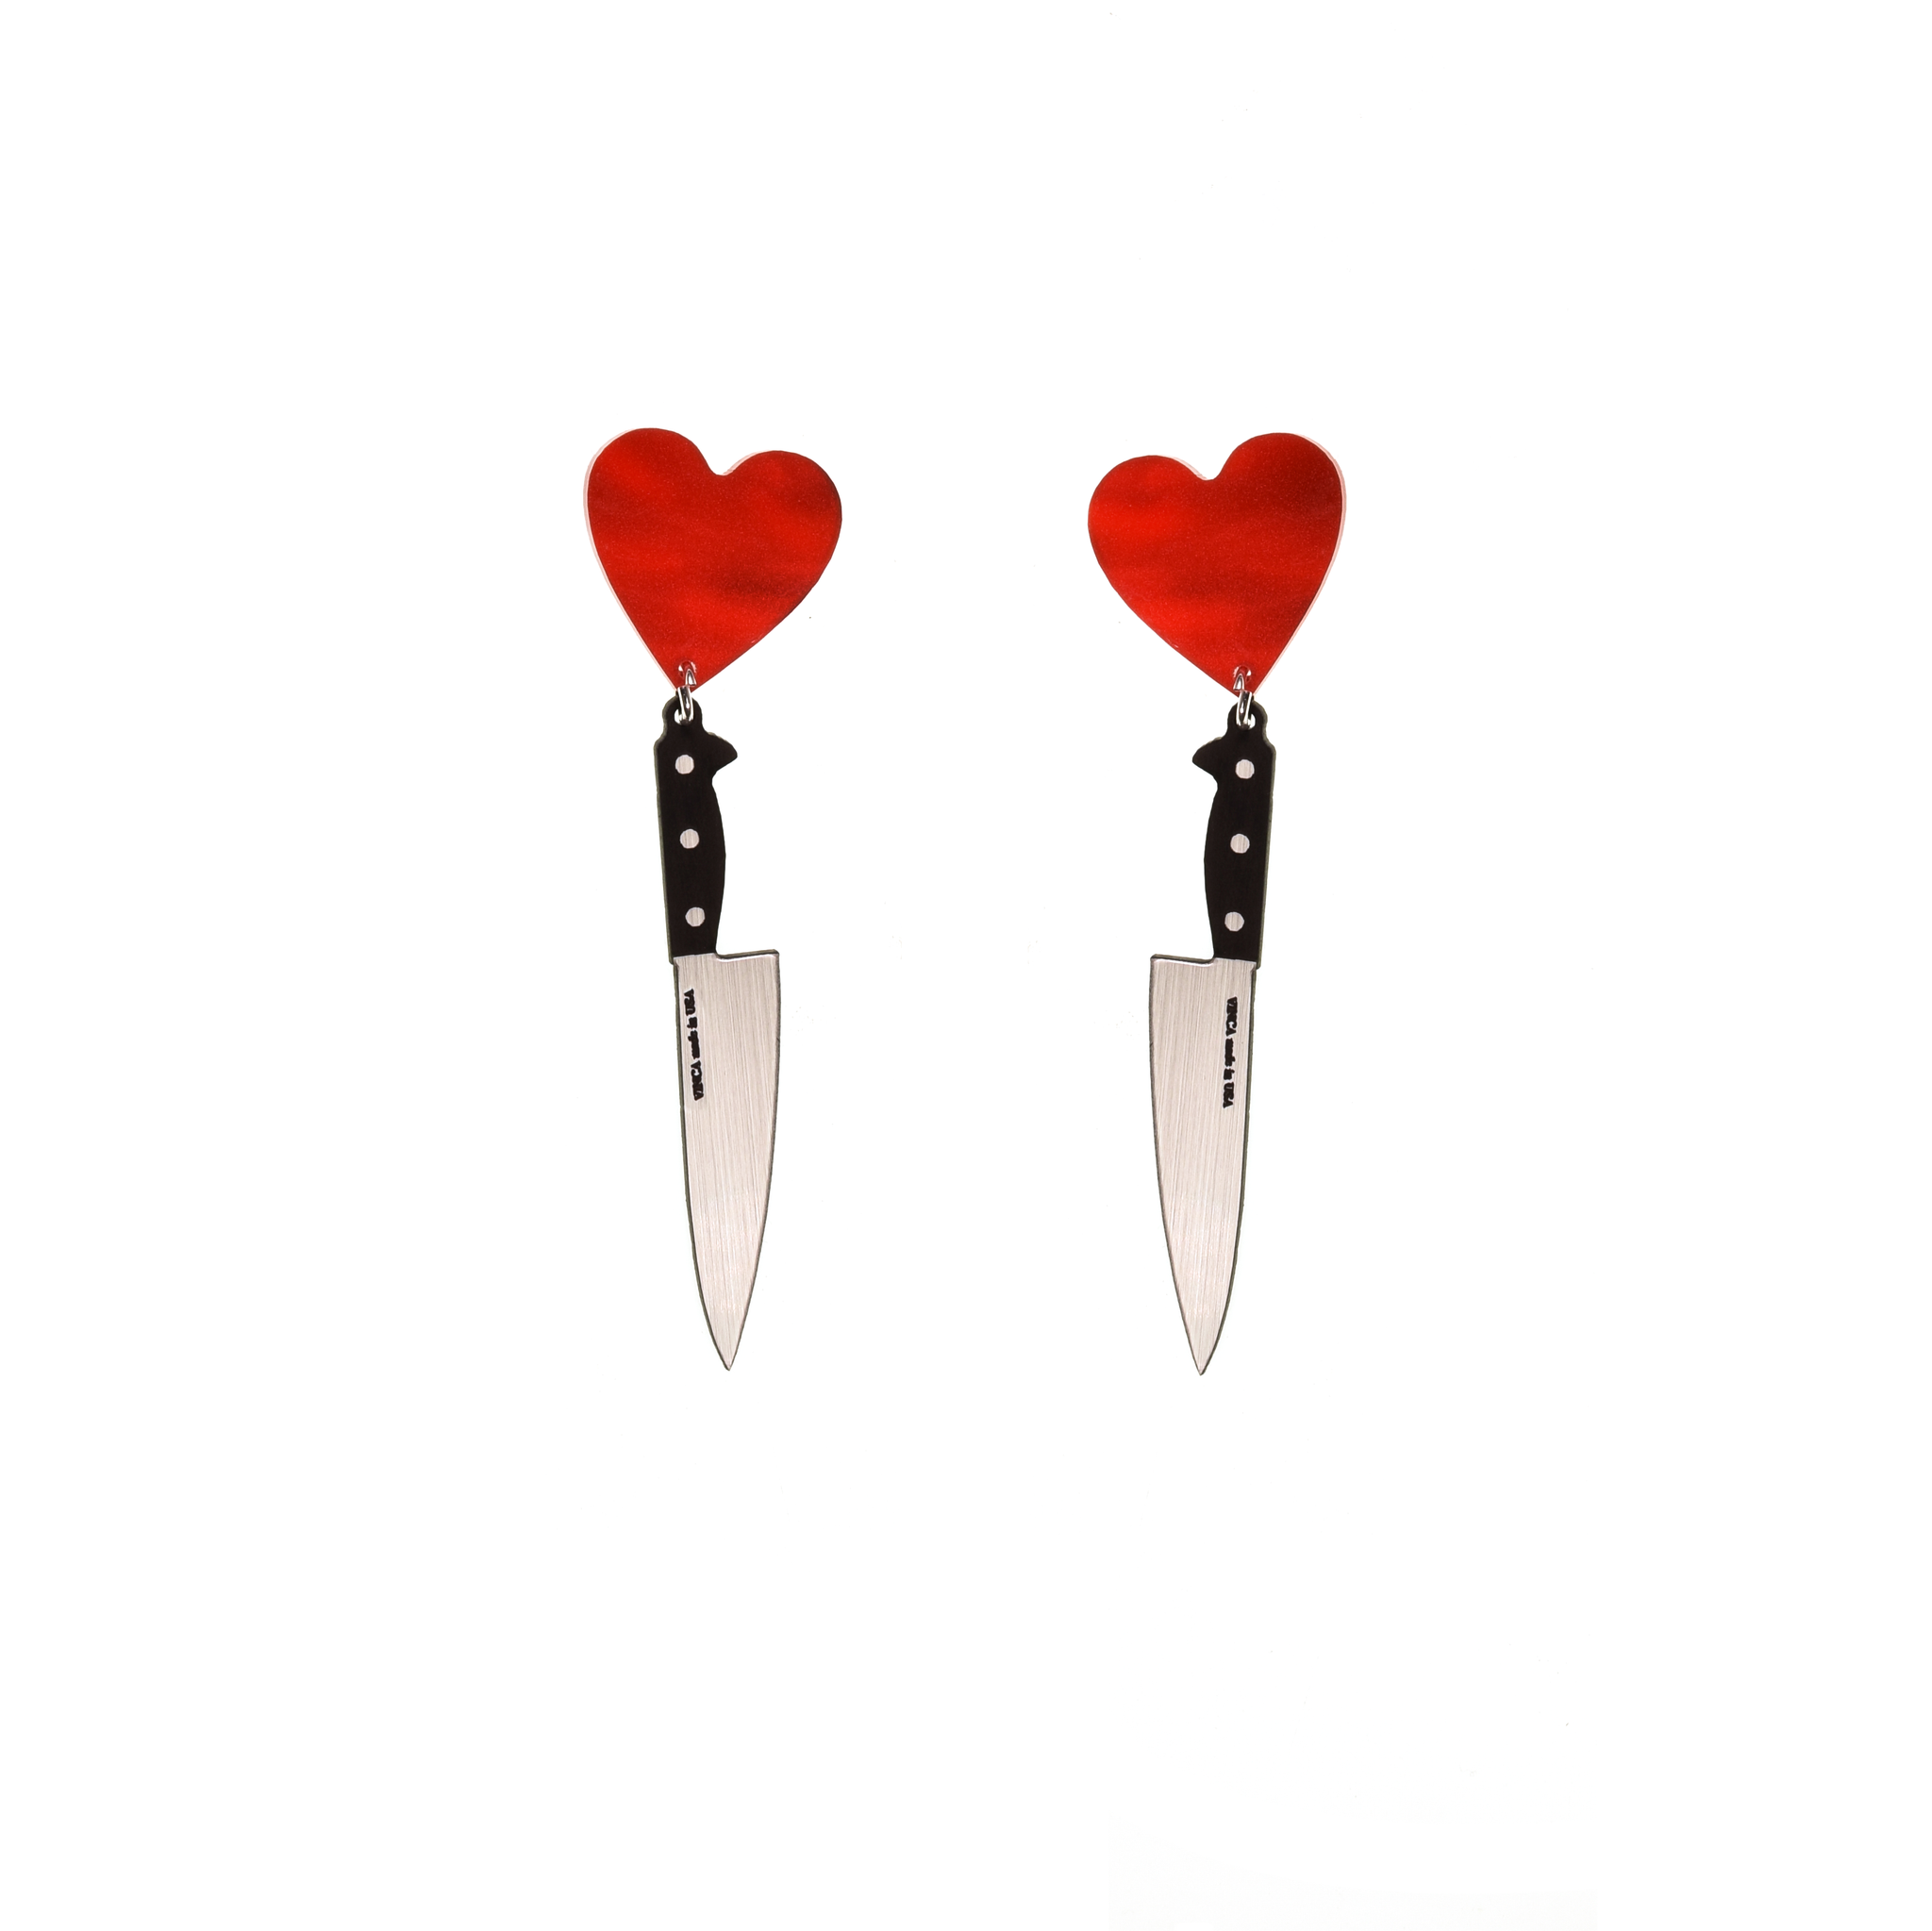 Vinca - I Heart Knives Earrings in SASSY